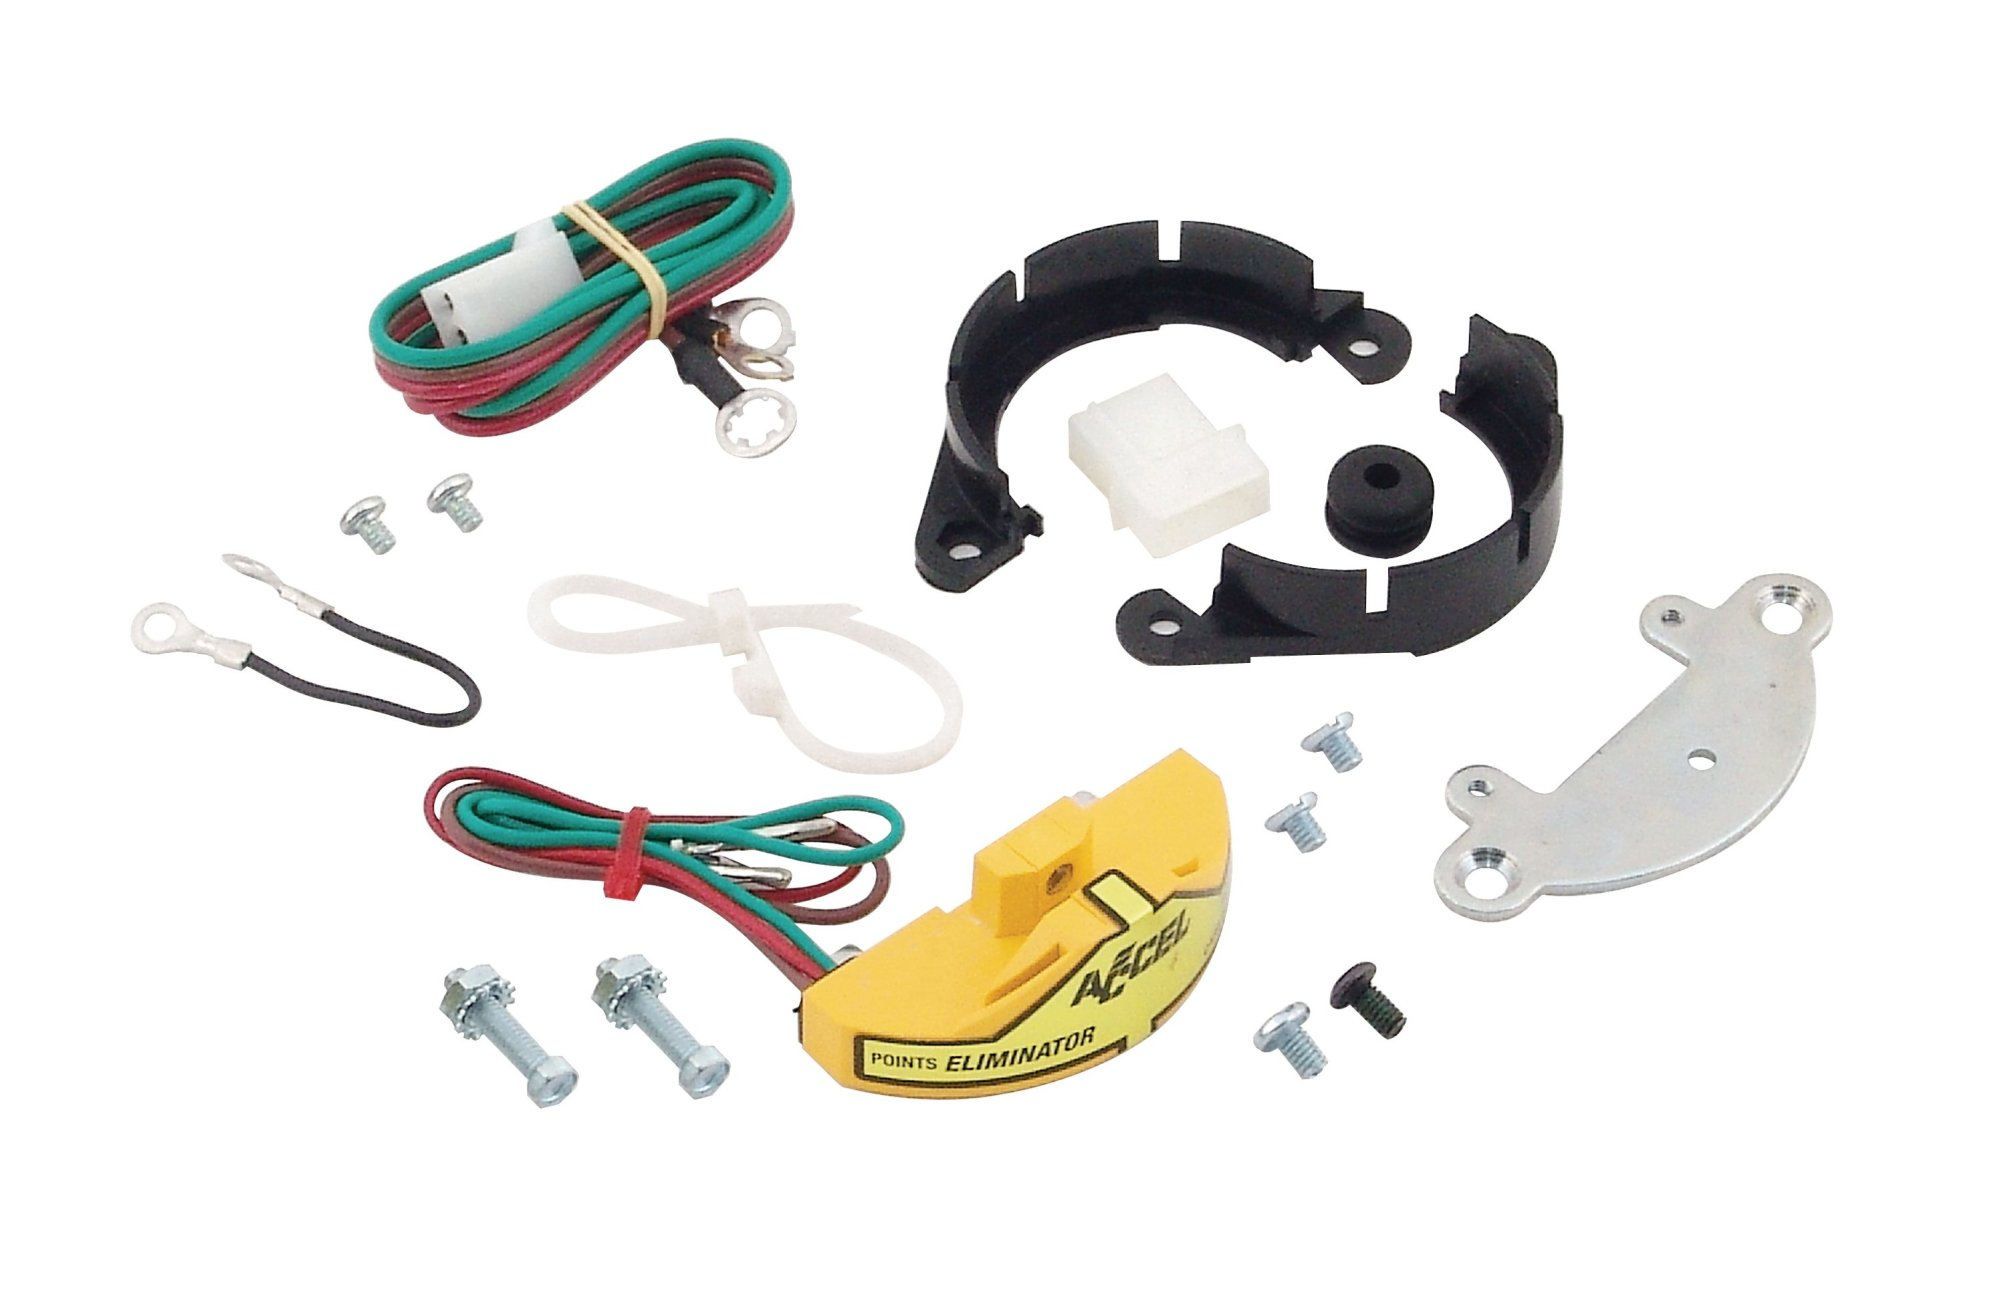 hight resolution of 2010acc points eliminator kit for gm v 8 points distributors image